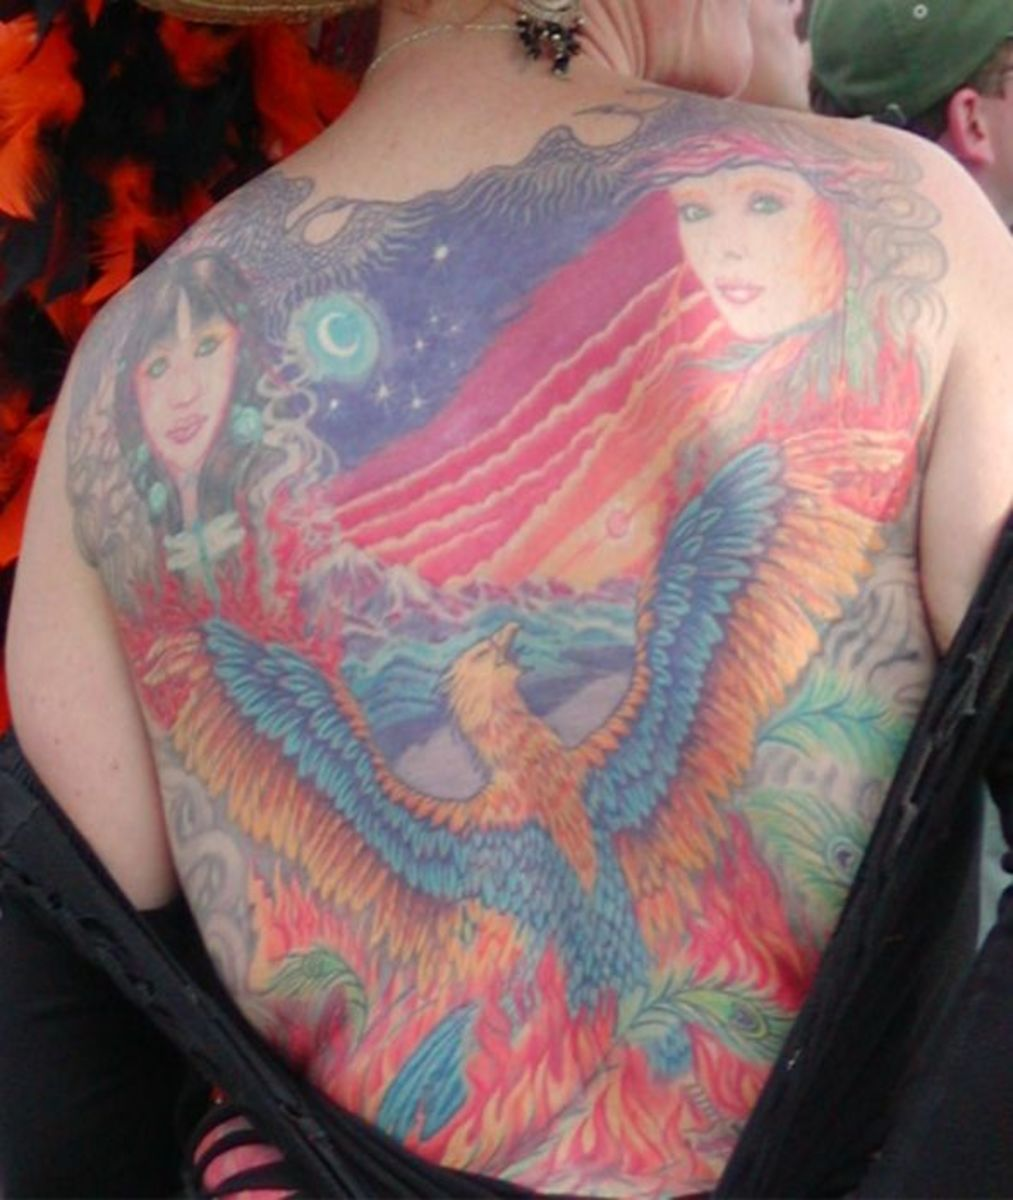 Photo credit: imagefactory from morguefile.com woman's back tattoo body art